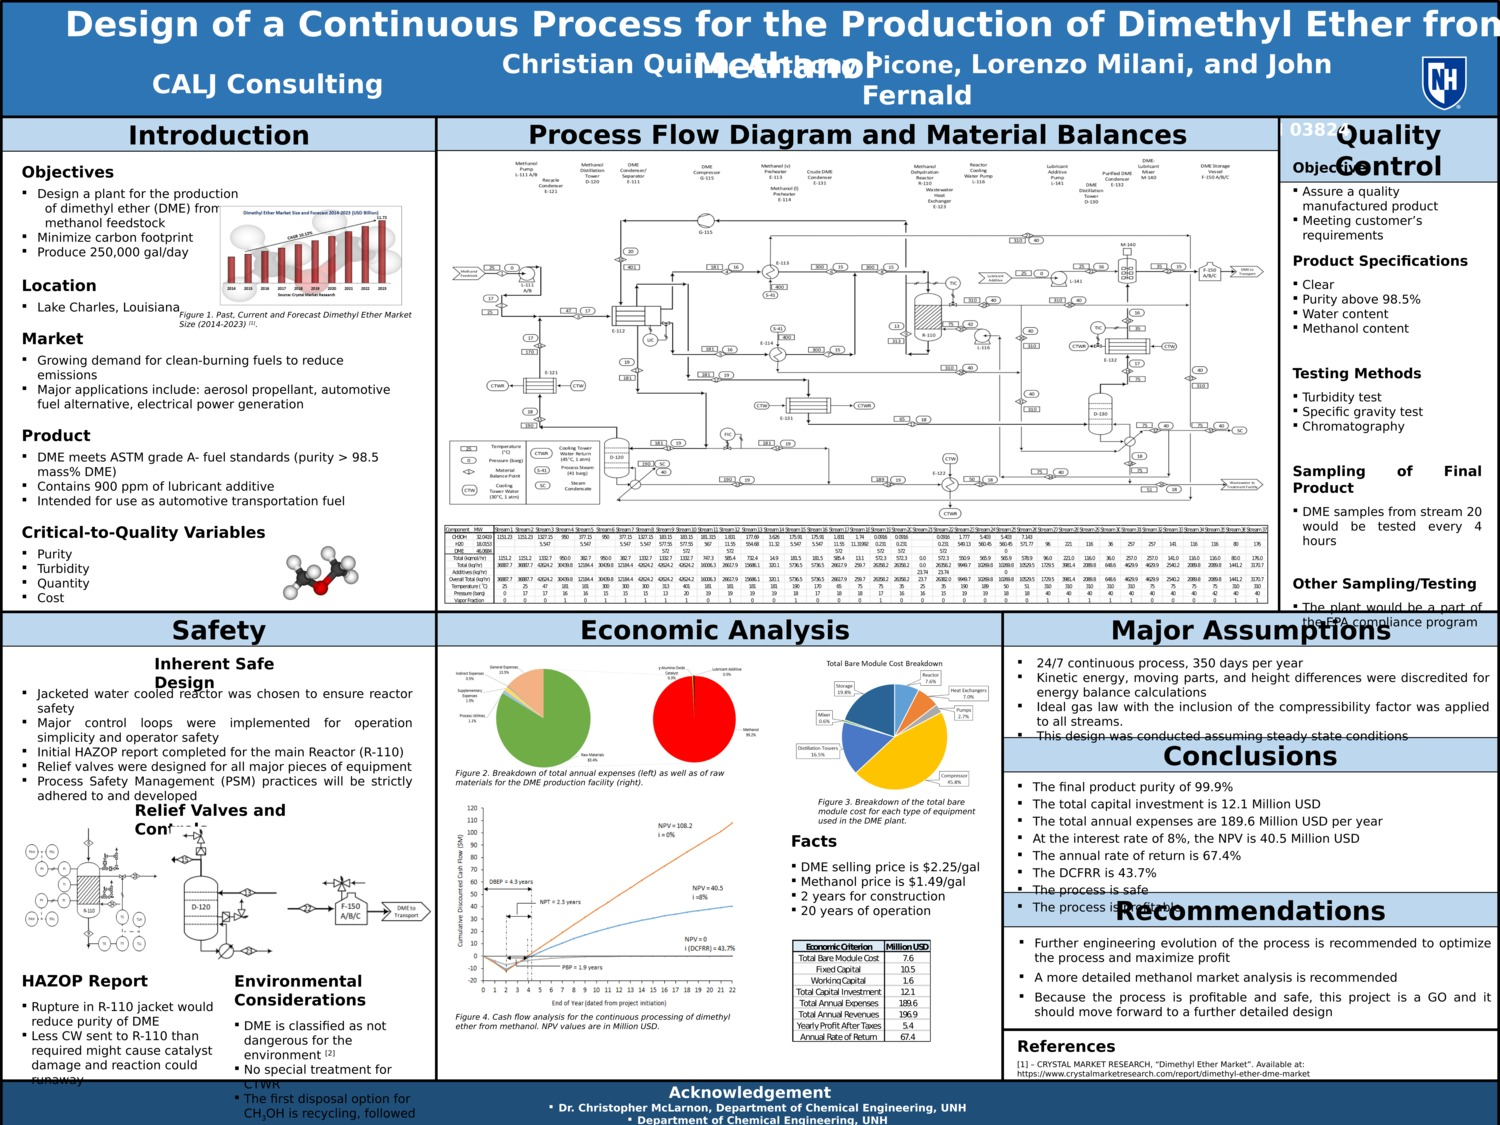 Calj Consulting - Final Poster by lm2014